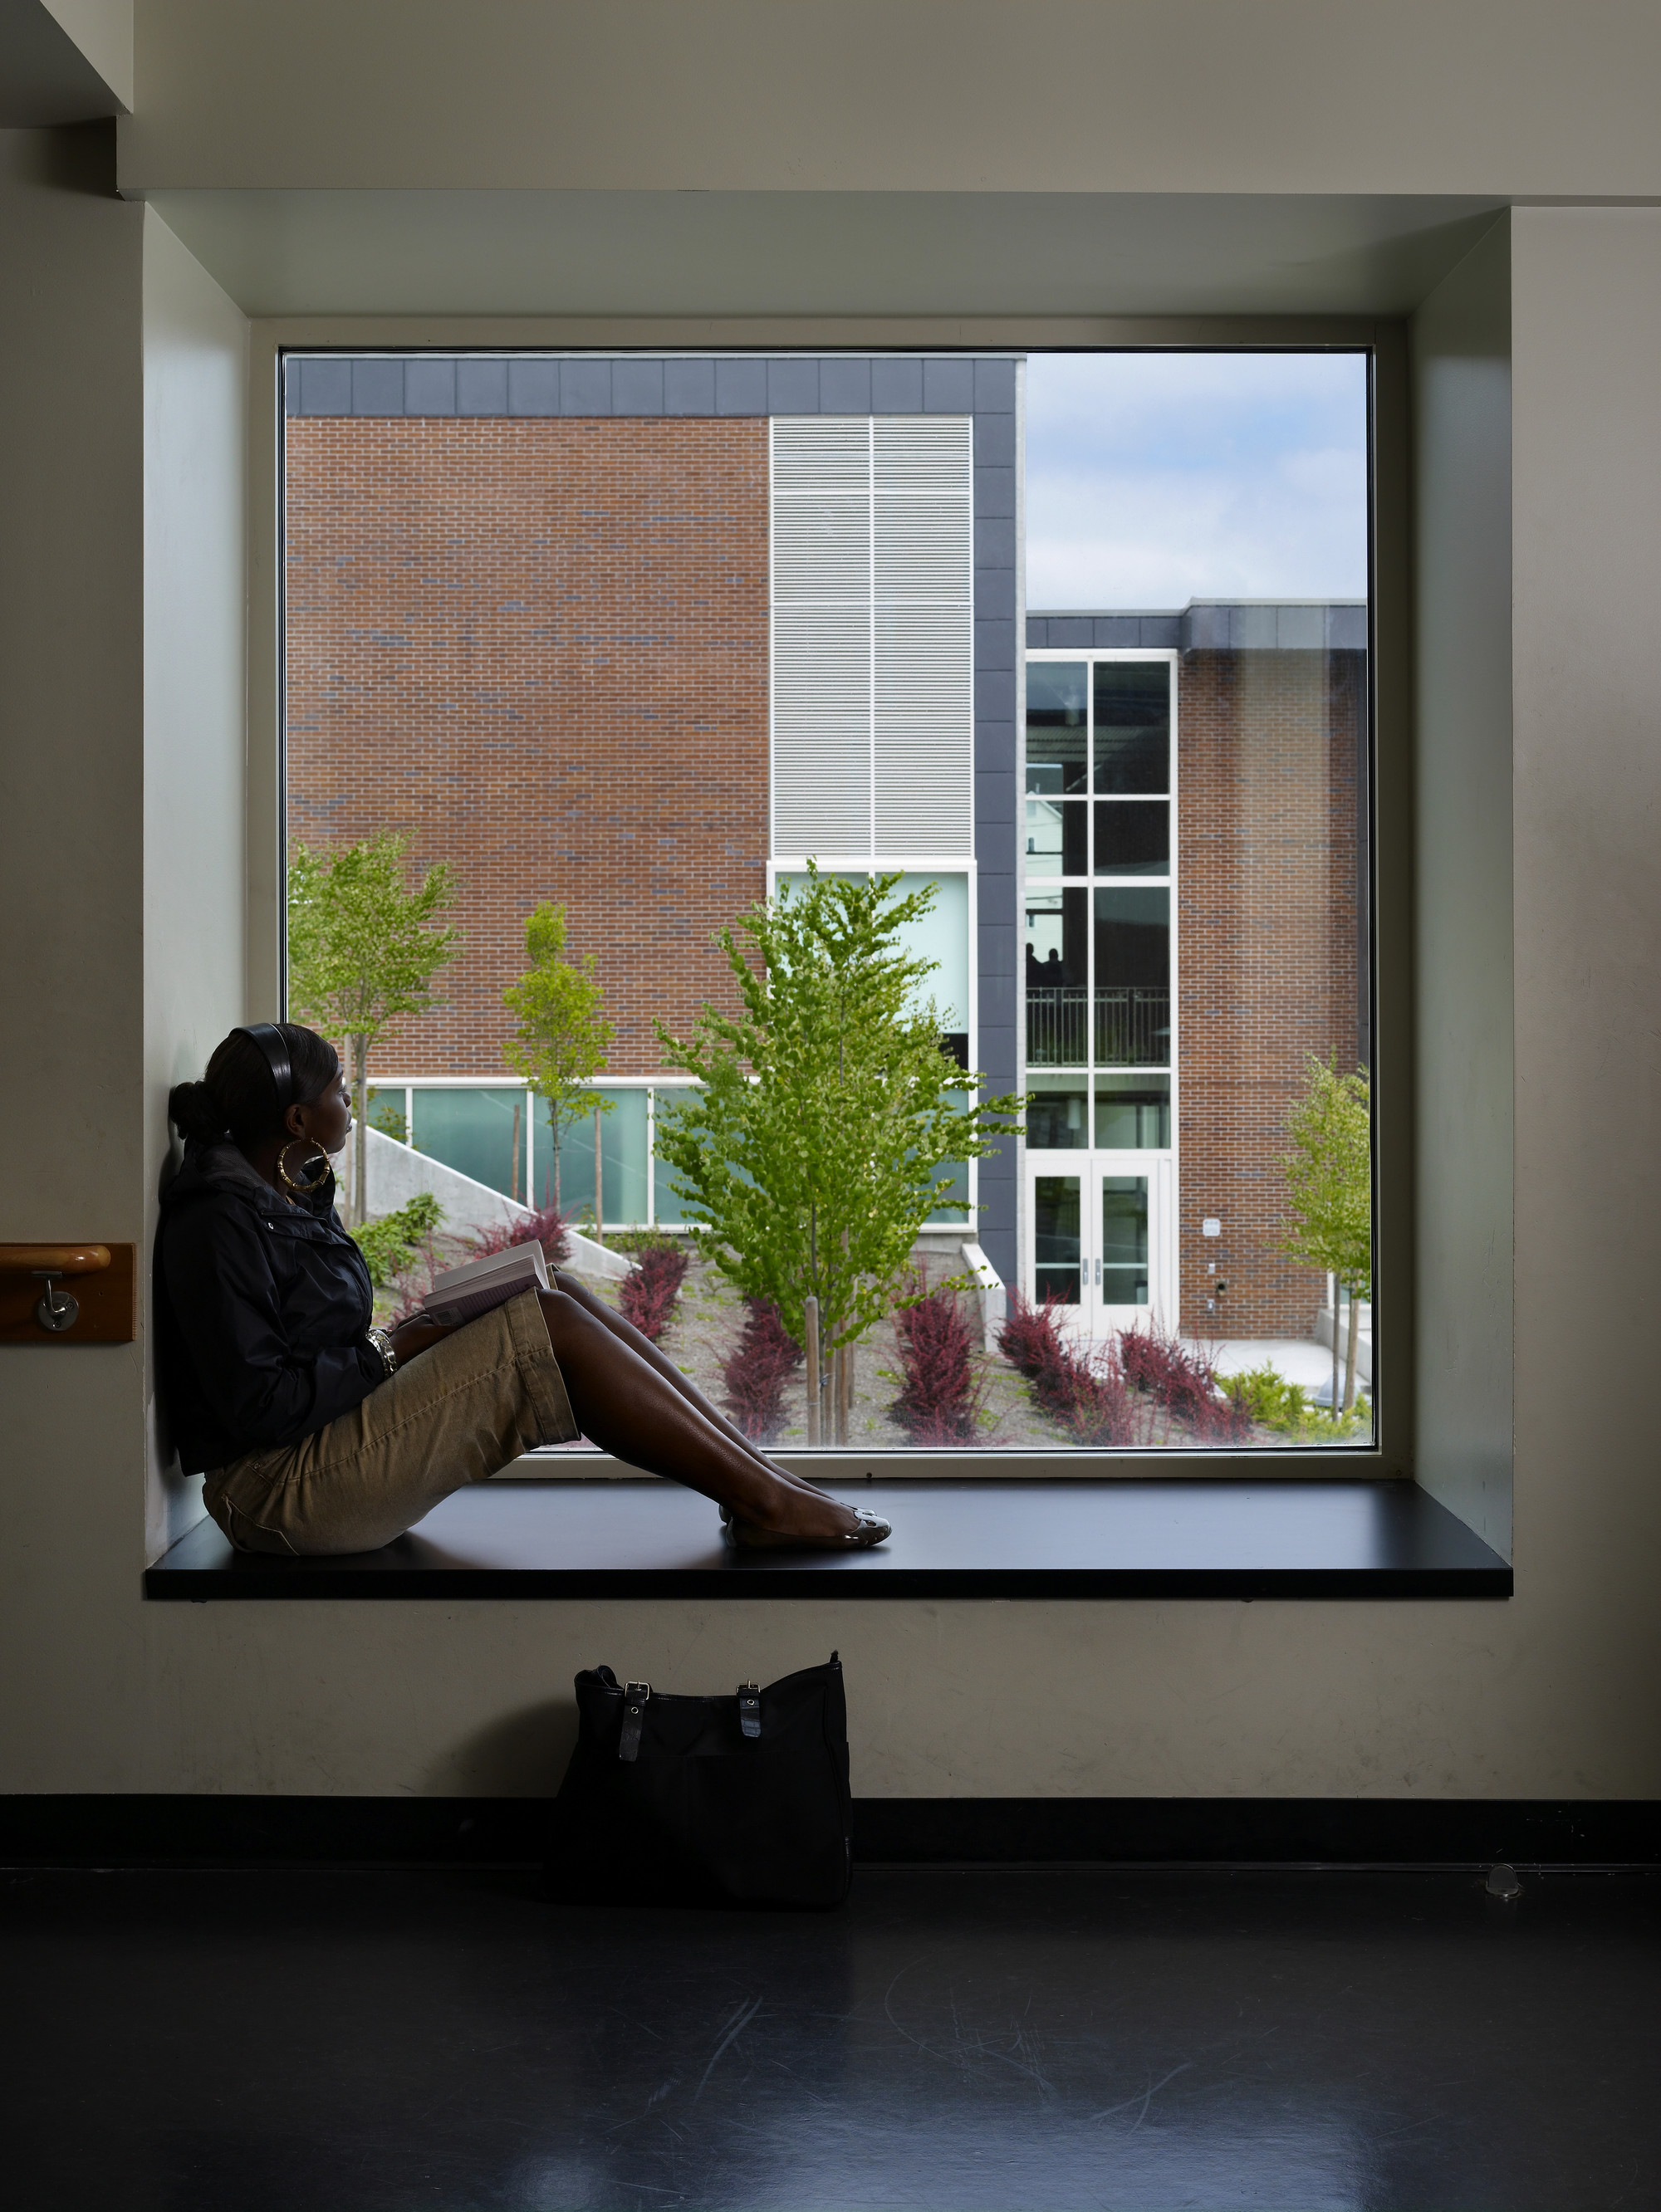 The 8 Things Domestic Violence Shelters Can Teach Us About Secure School Design